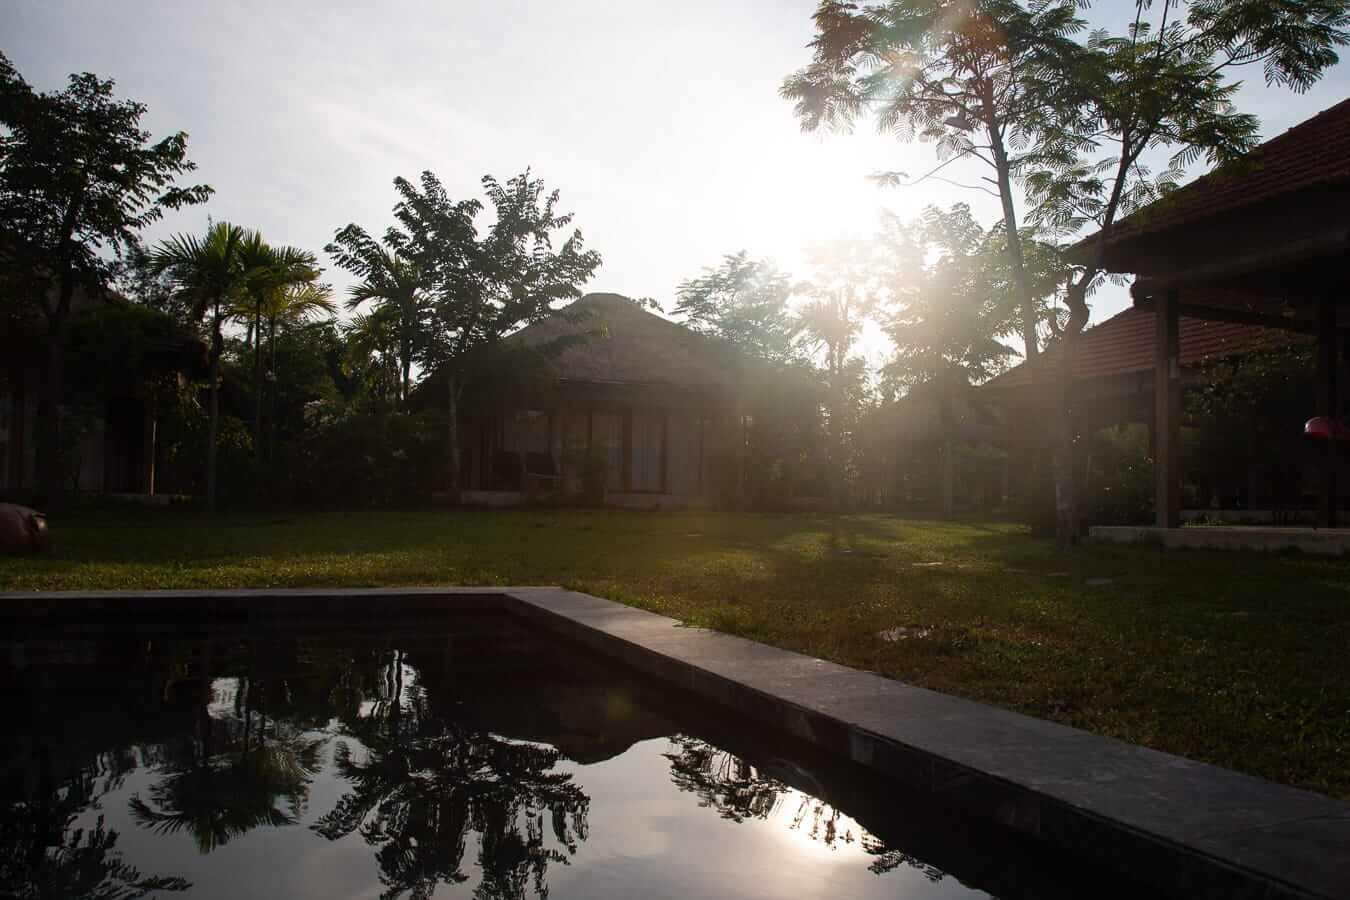 Cam Thanh: Where to stay in Hoi An